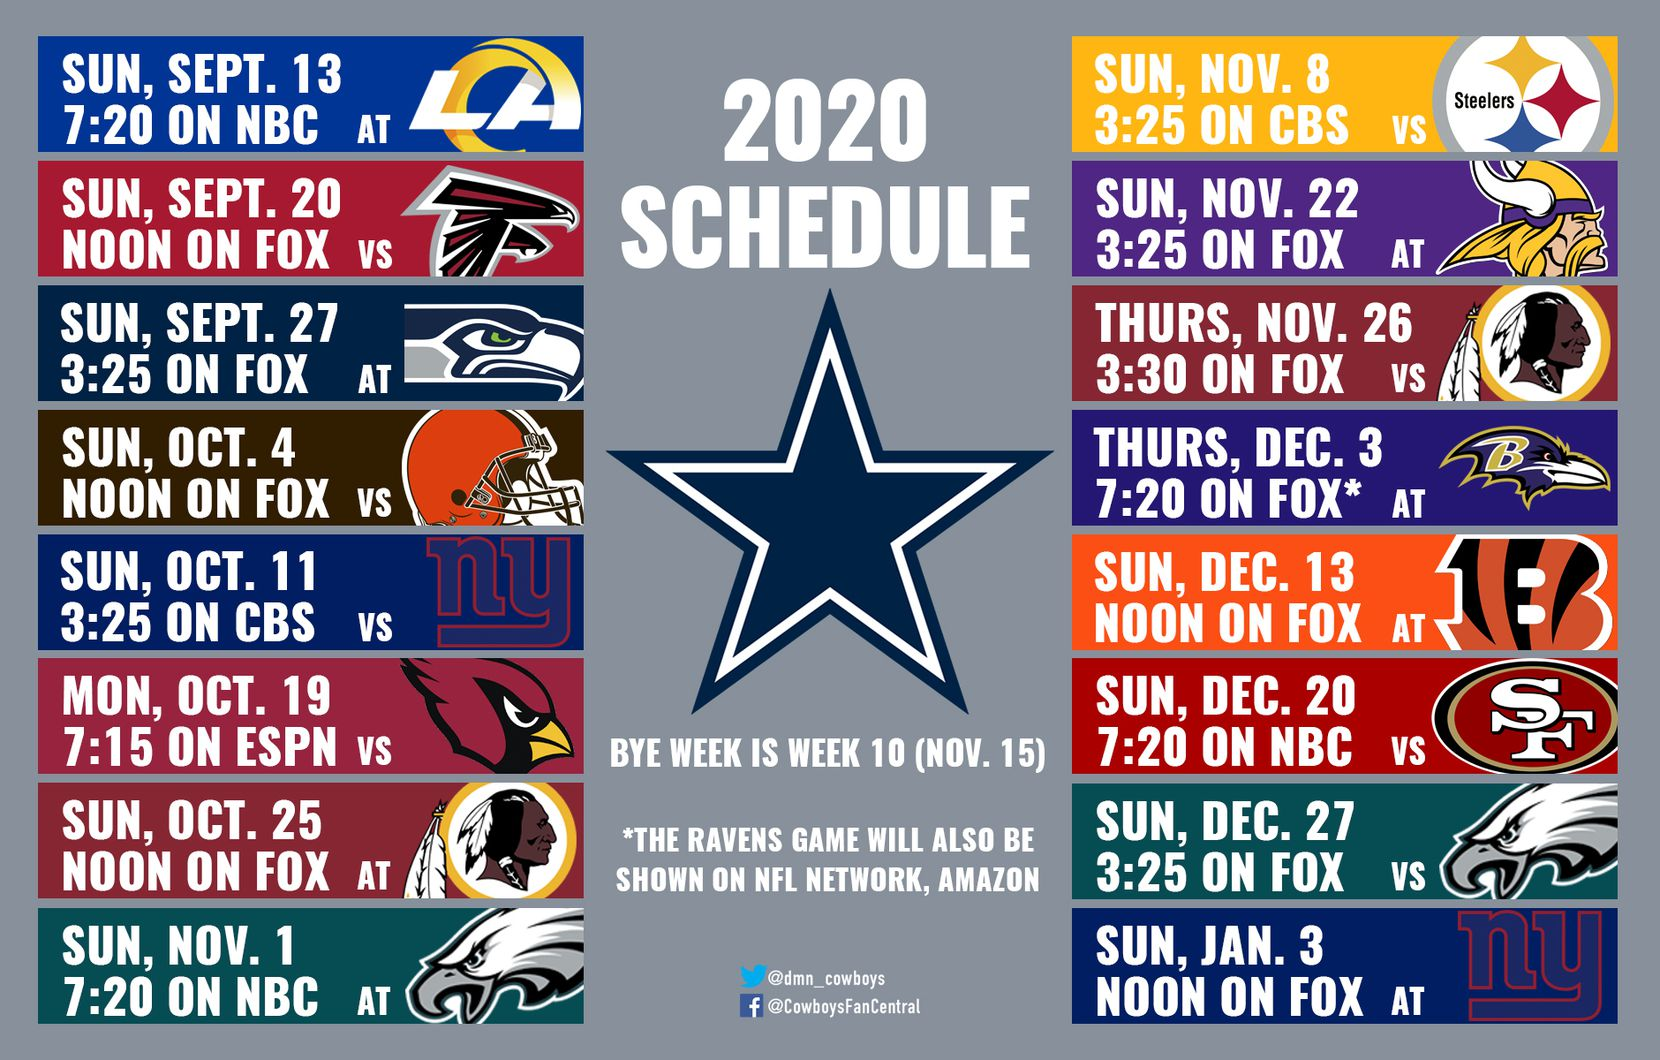 2020 Cowboys Schedule Dates And Times Announced For Dallas Preseason Games